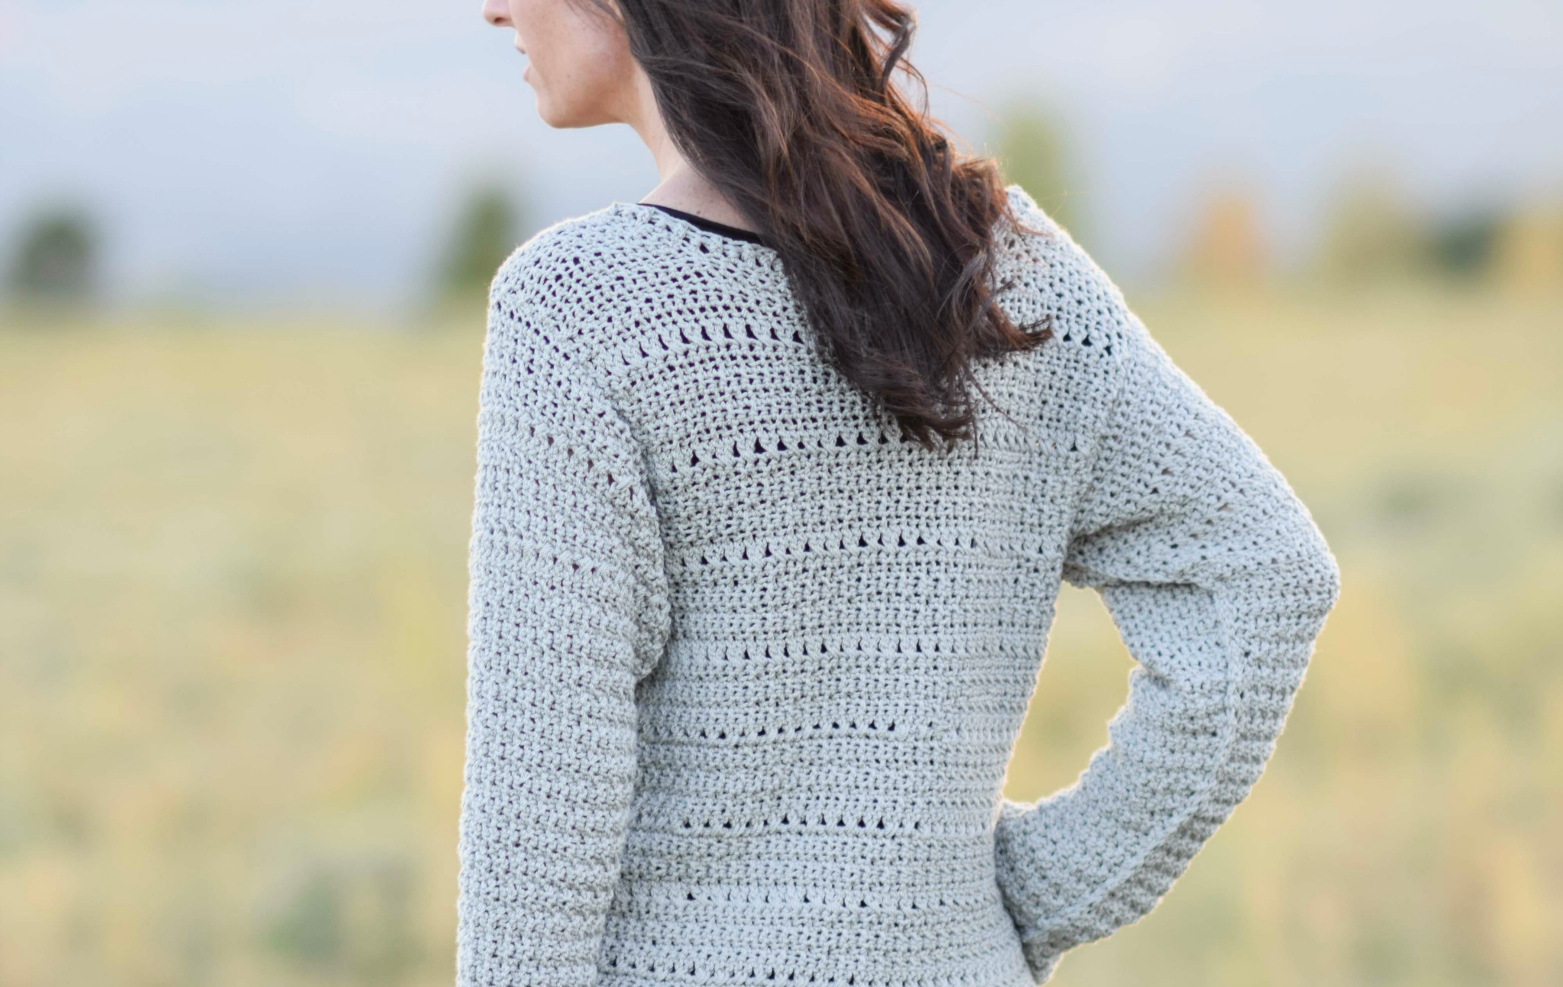 aac07c89e The Lakeside Easy Crocheted Pullover Pattern – Mama In A Stitch